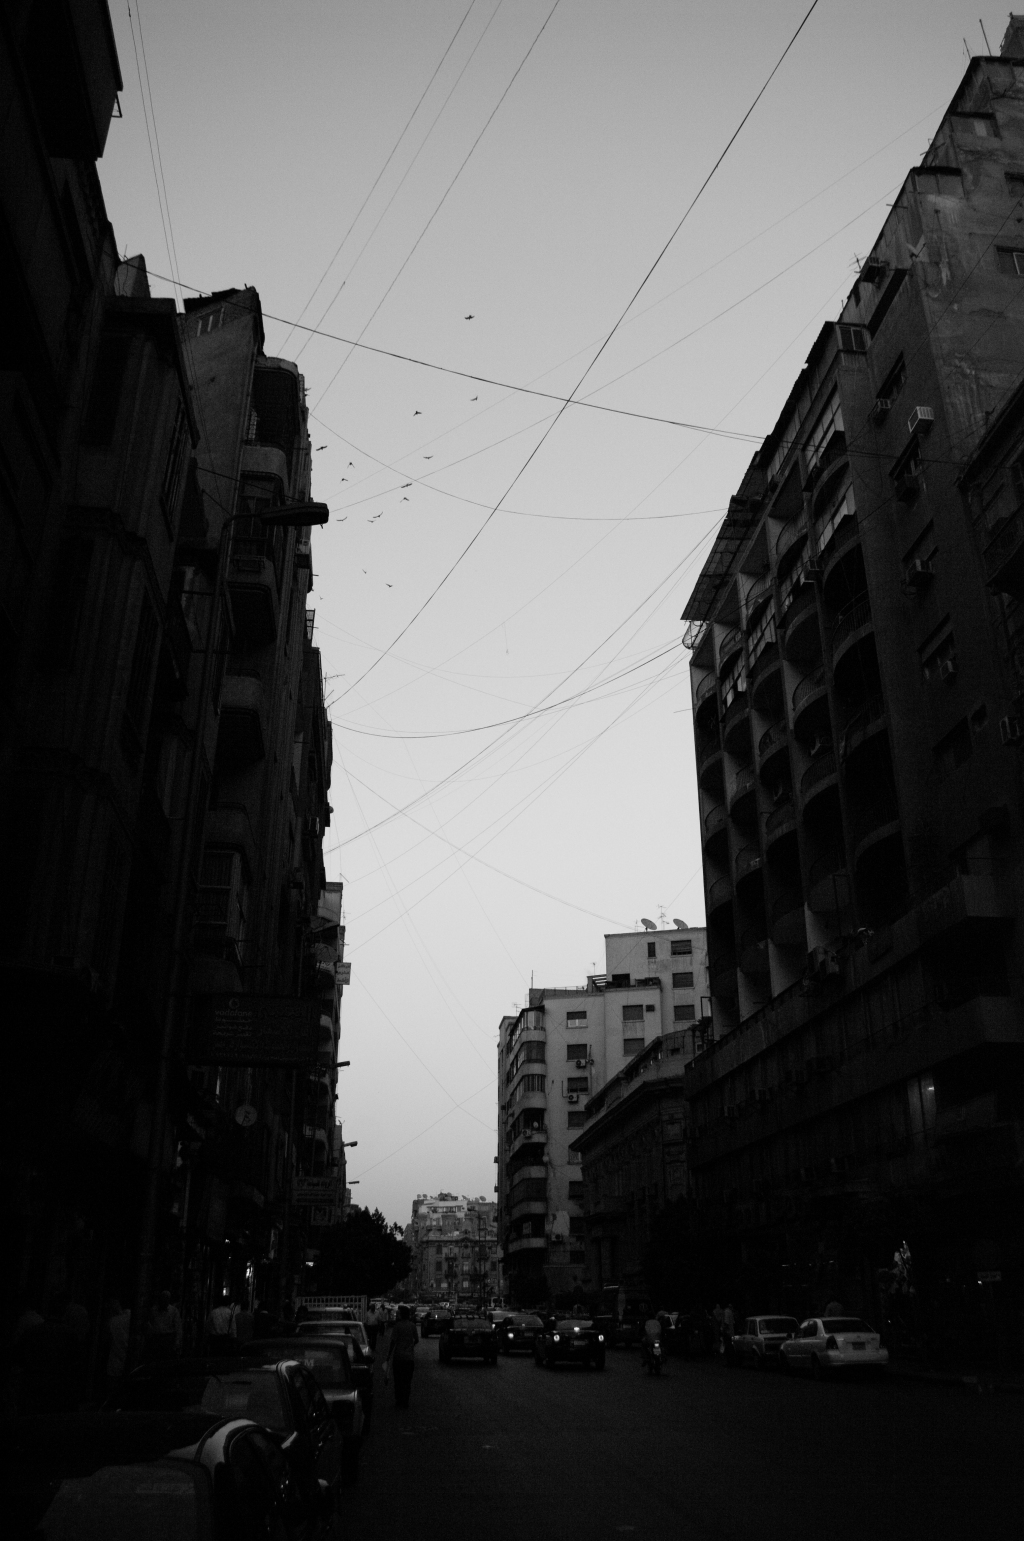 street wires,Cairo,Egypt,Photography,black and white